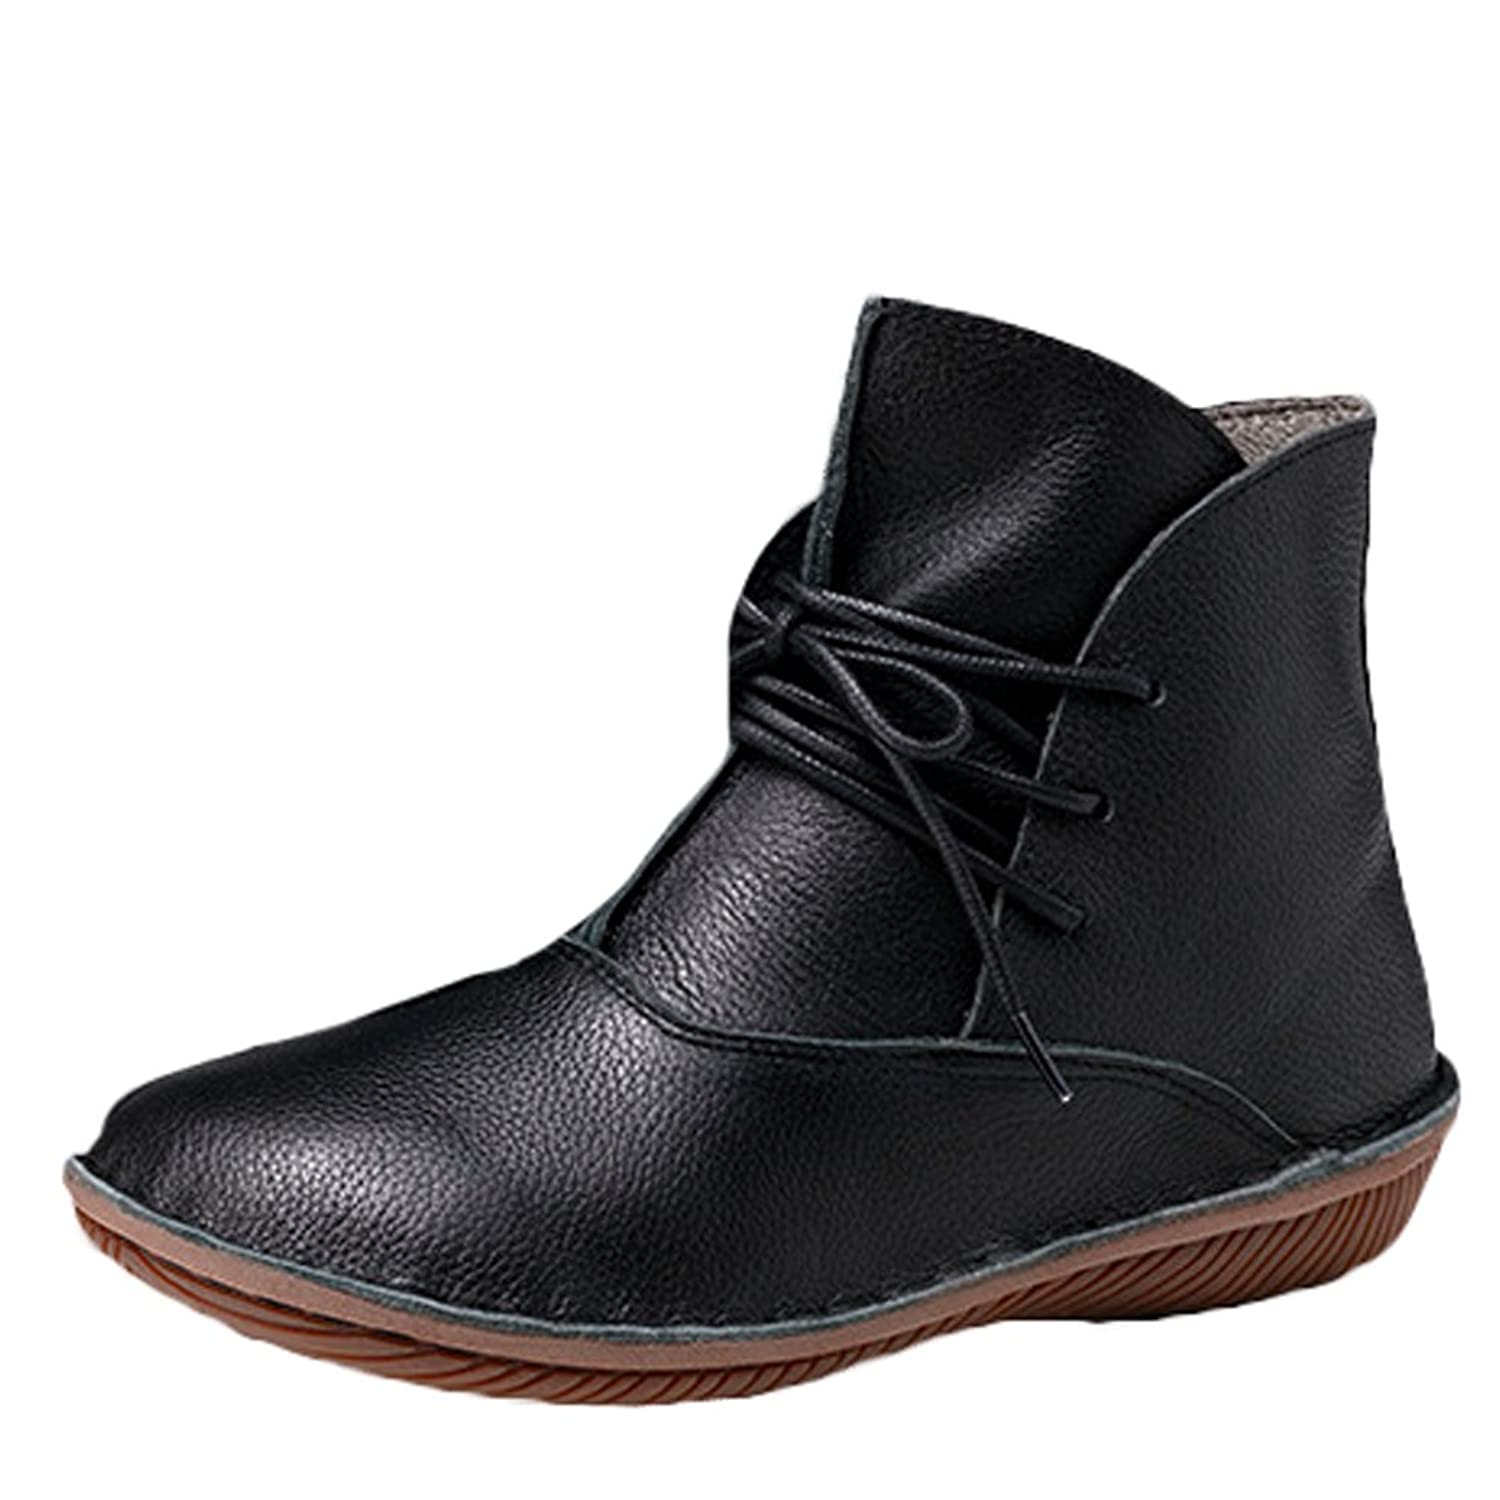 Mordenmiss Women's Leather Short Boots New Shoes Style 1 Black Fleece